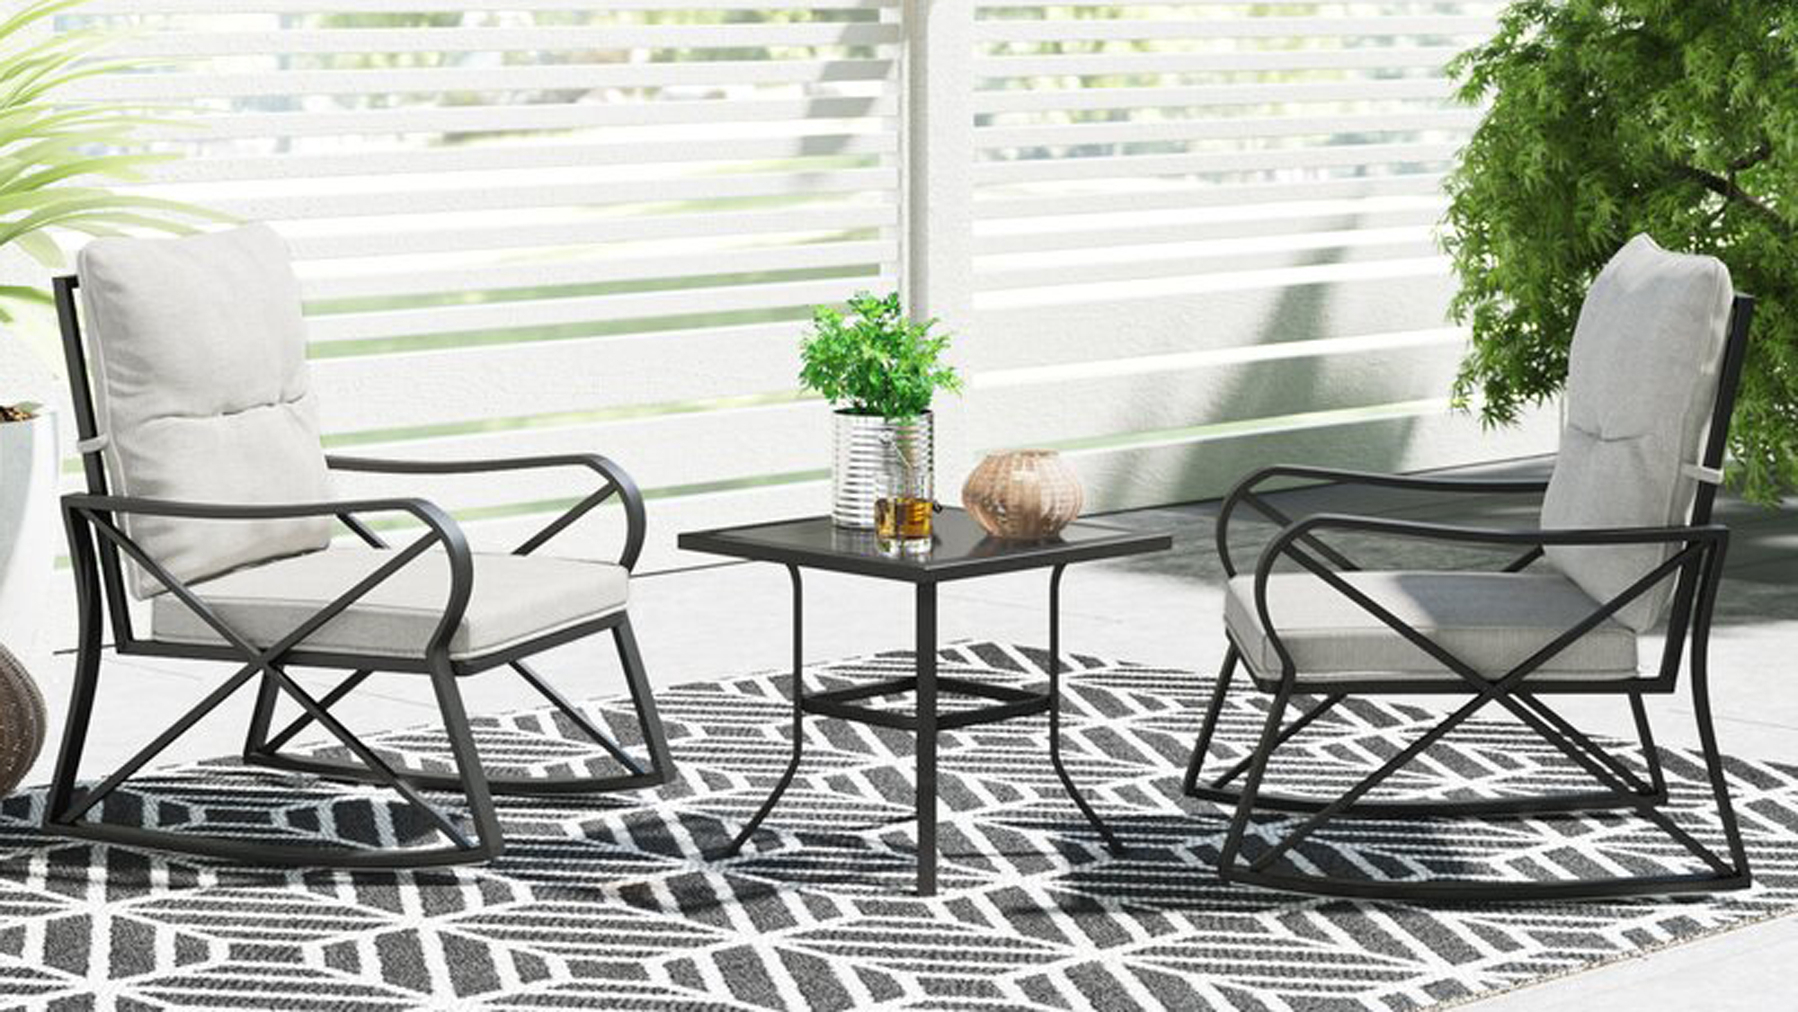 Wayfair Labor Day Sale: 70% Off These Top Buys Until With Regard To Hofstetter Armchairs (View 15 of 15)